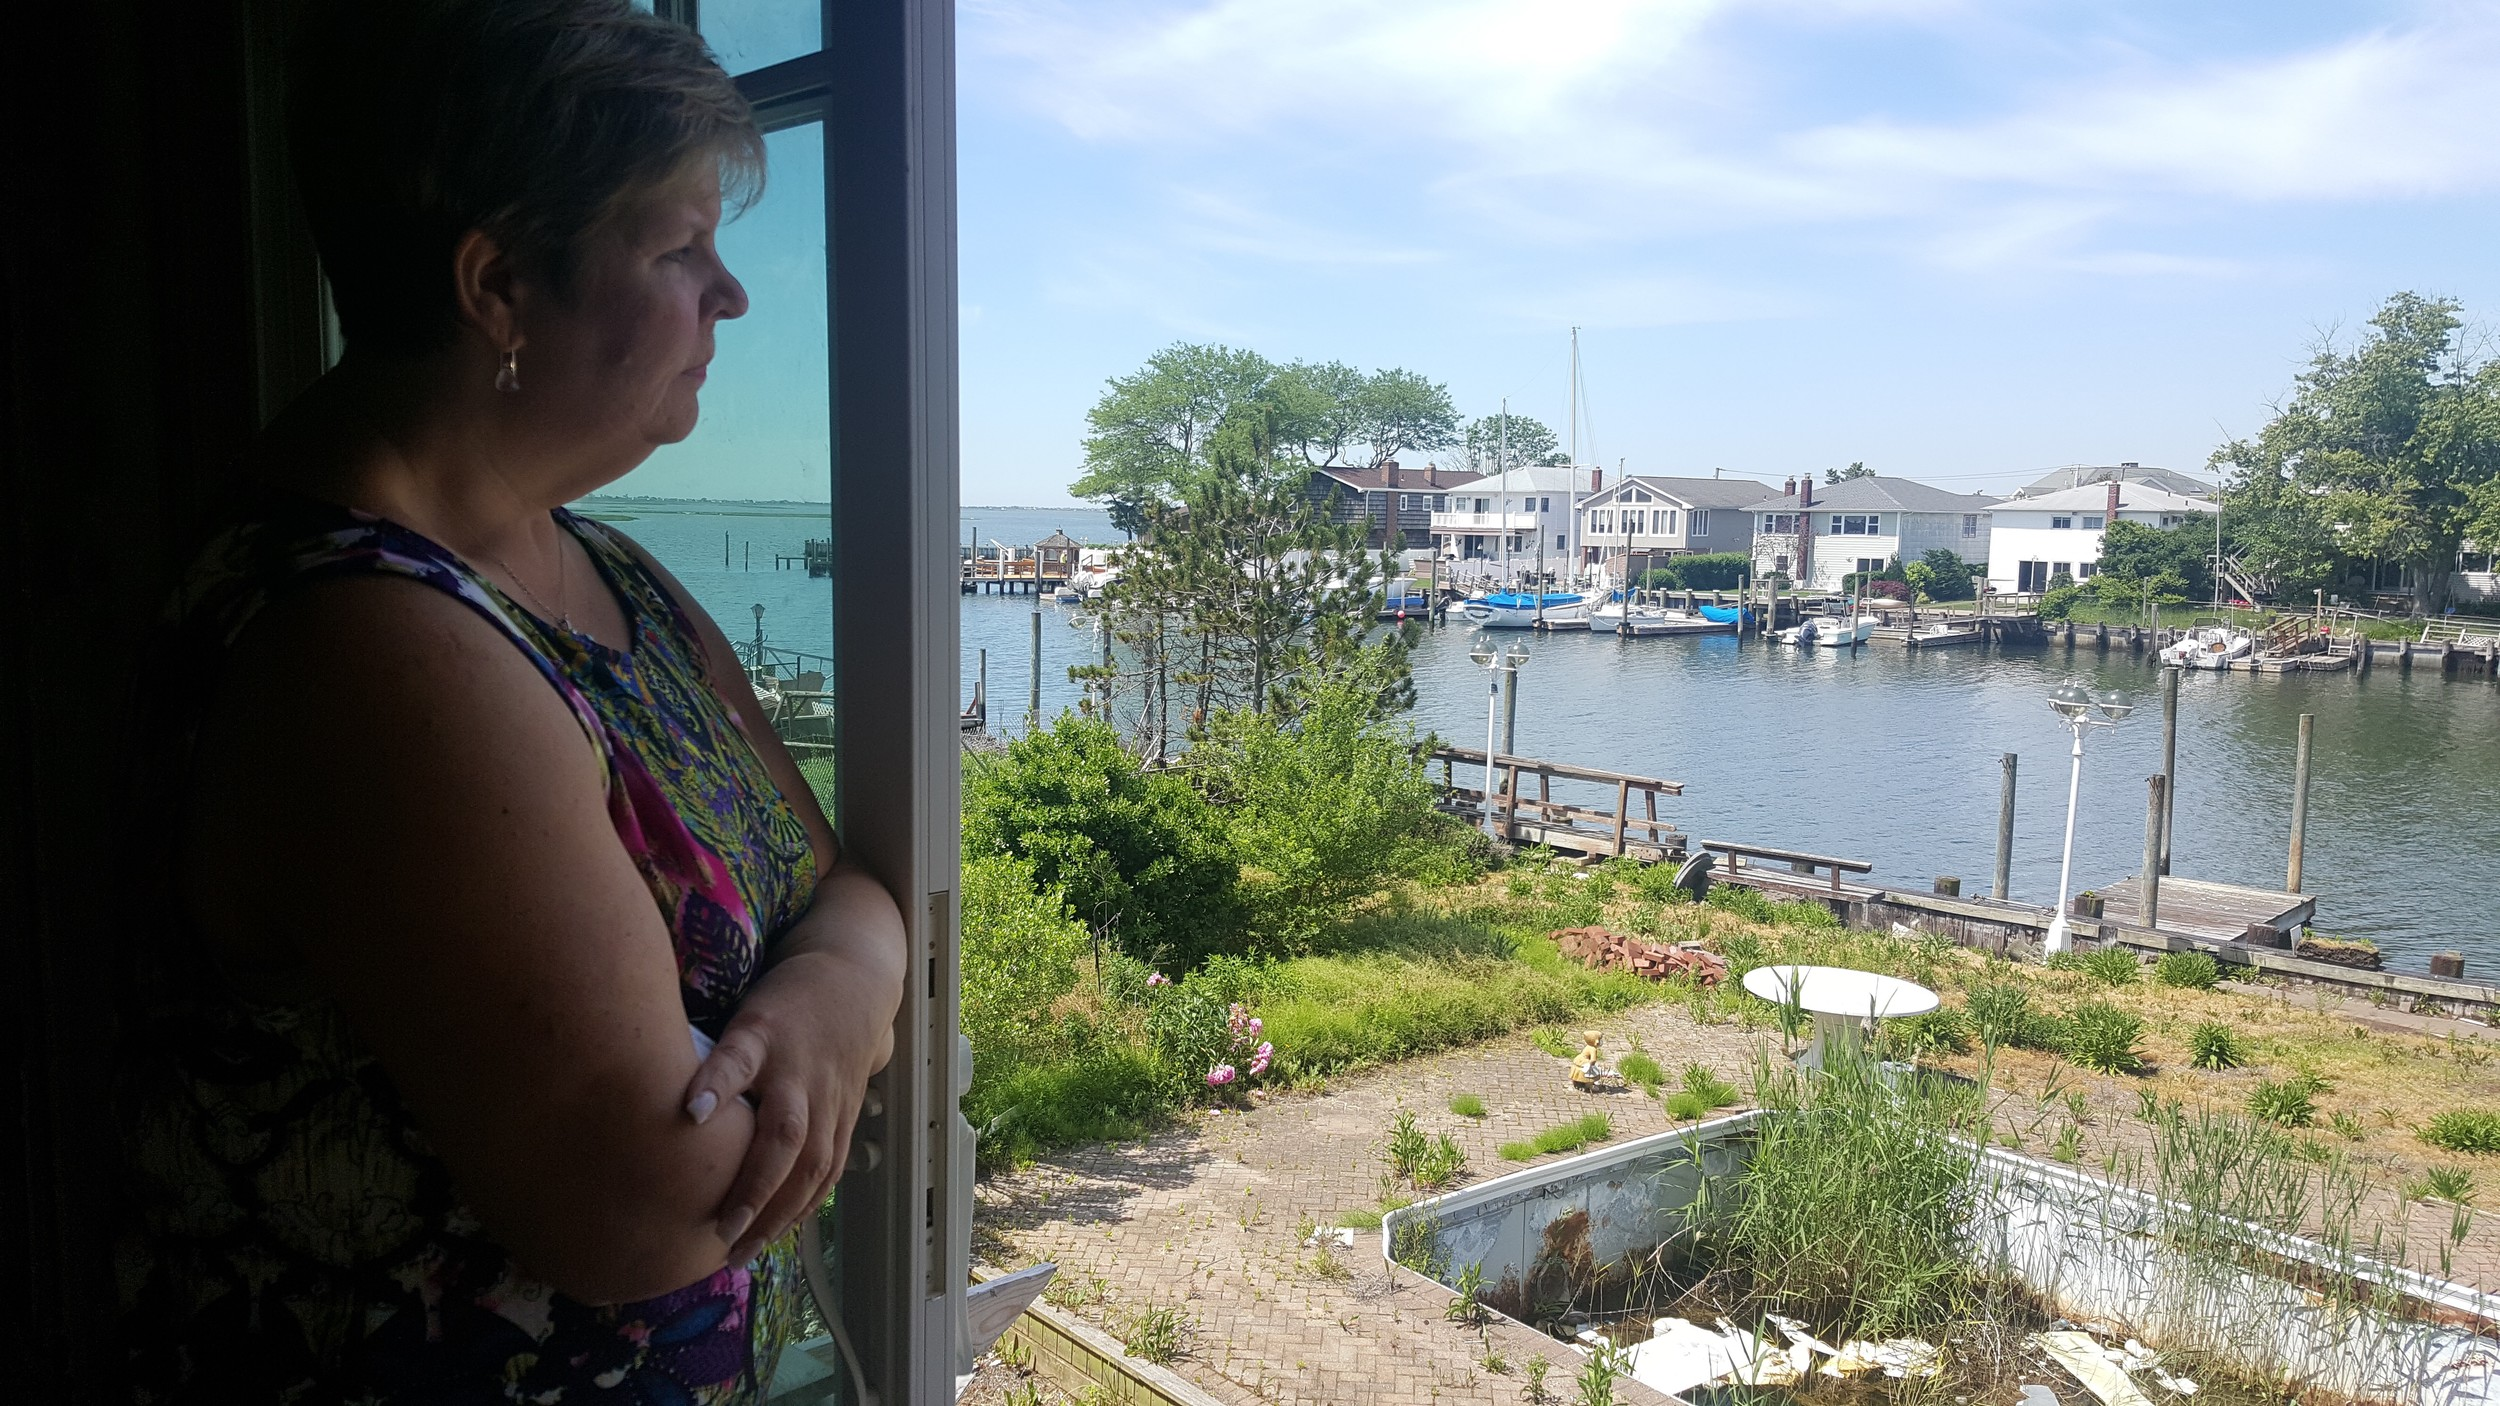 Illona Jagnow, a Freeport native, looked out the patio window of her family home off South Long Beach Avenue at an unruly yard covered in weeds and construction debris.